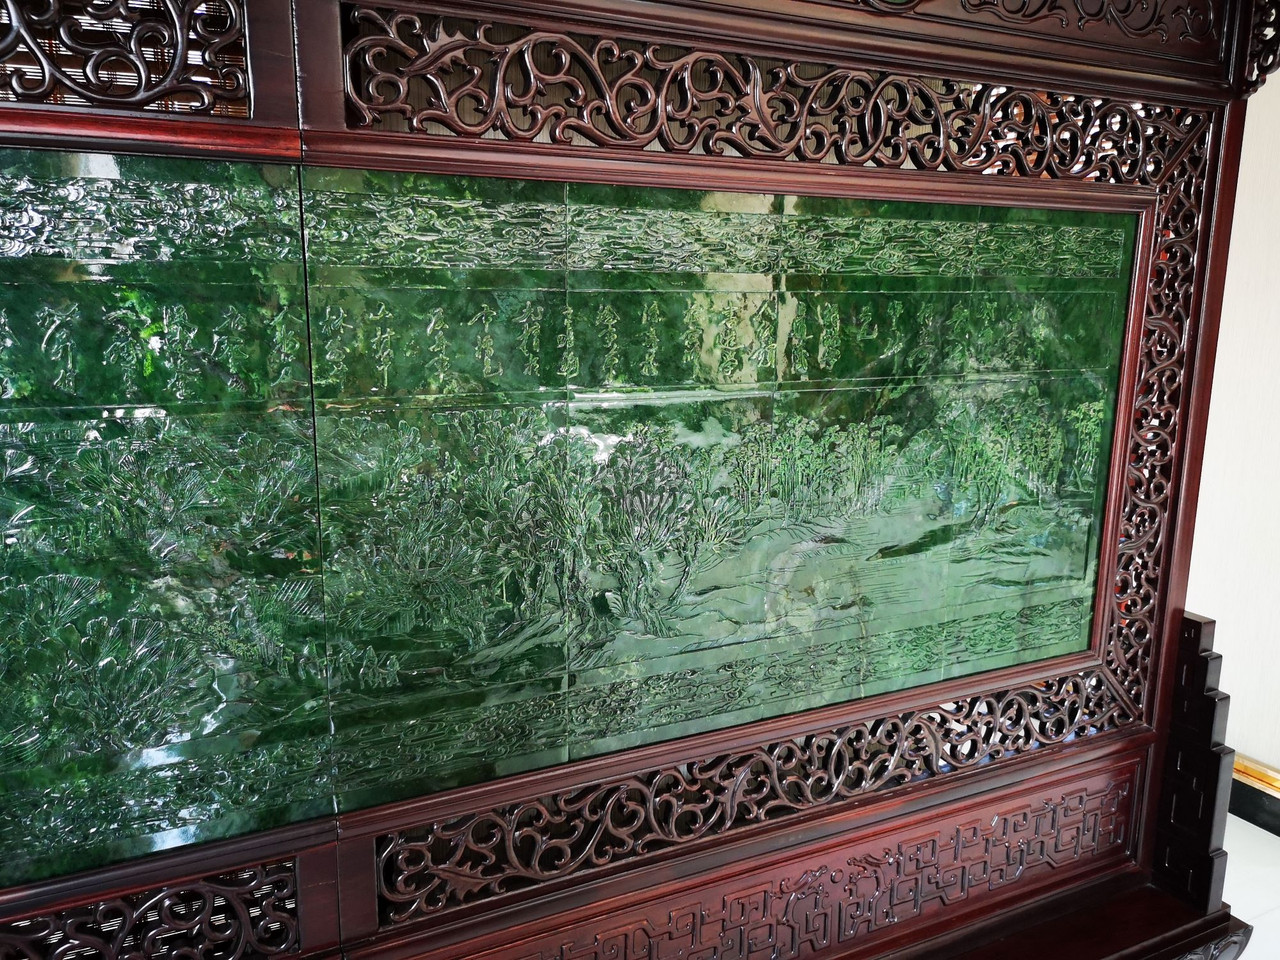 6.39m*2.36m Green Jade Rosewood Chinese Screen 碧玉屏风清明上河图 Along the River During the Qingming Festival